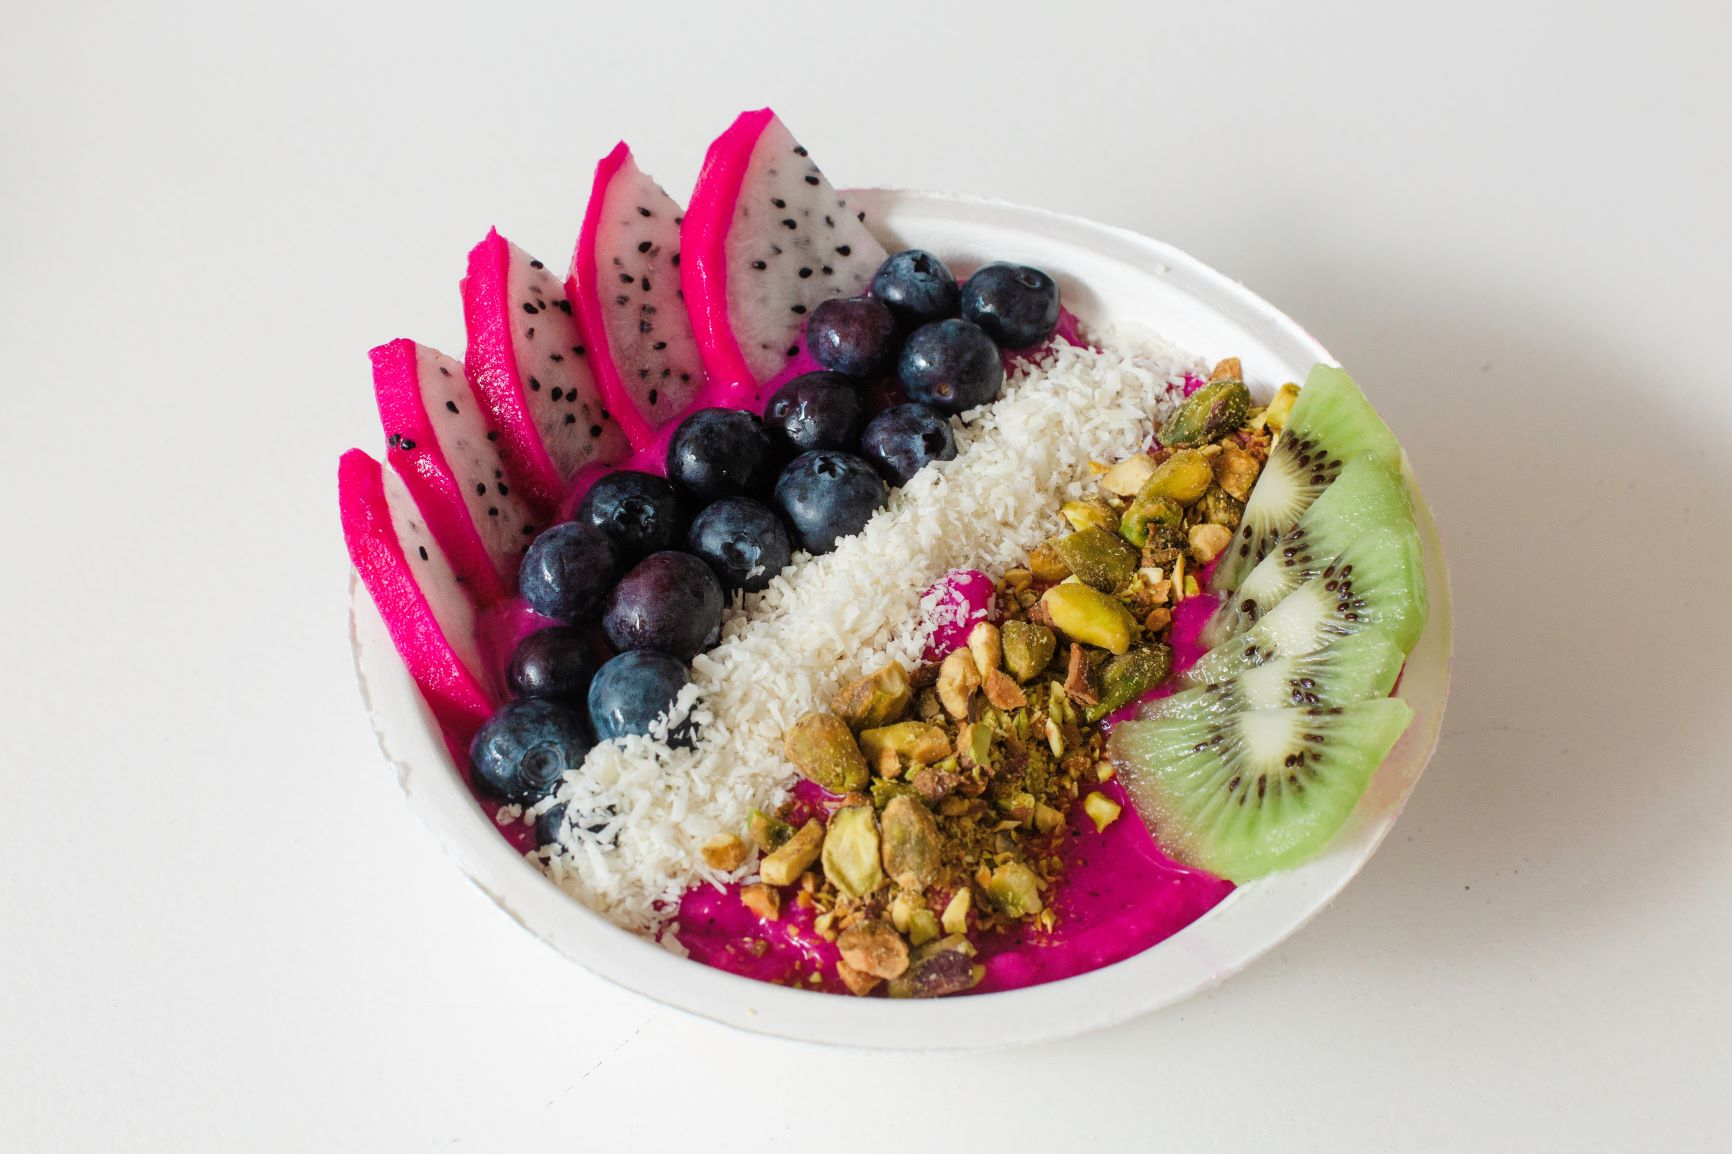 Sup-Succa  — Pitaya, coconut milk, strawberries, mango, agave. Topped with kiwi, dragonfruit, coconut flakes, pistachios, and edible flowers.